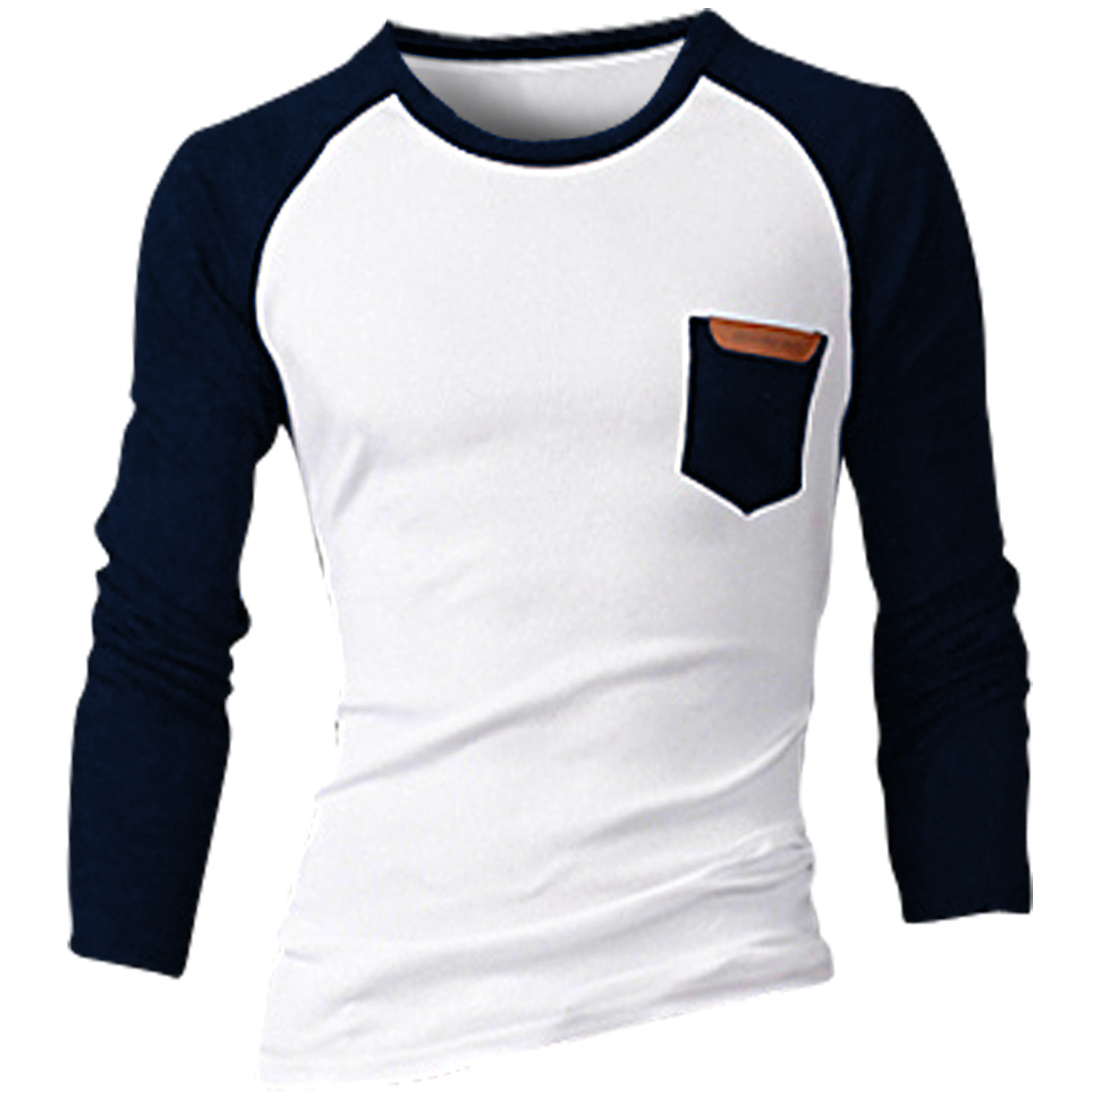 Men Round Neck Color Blocking Fashion T-shirt Navy Blue White M